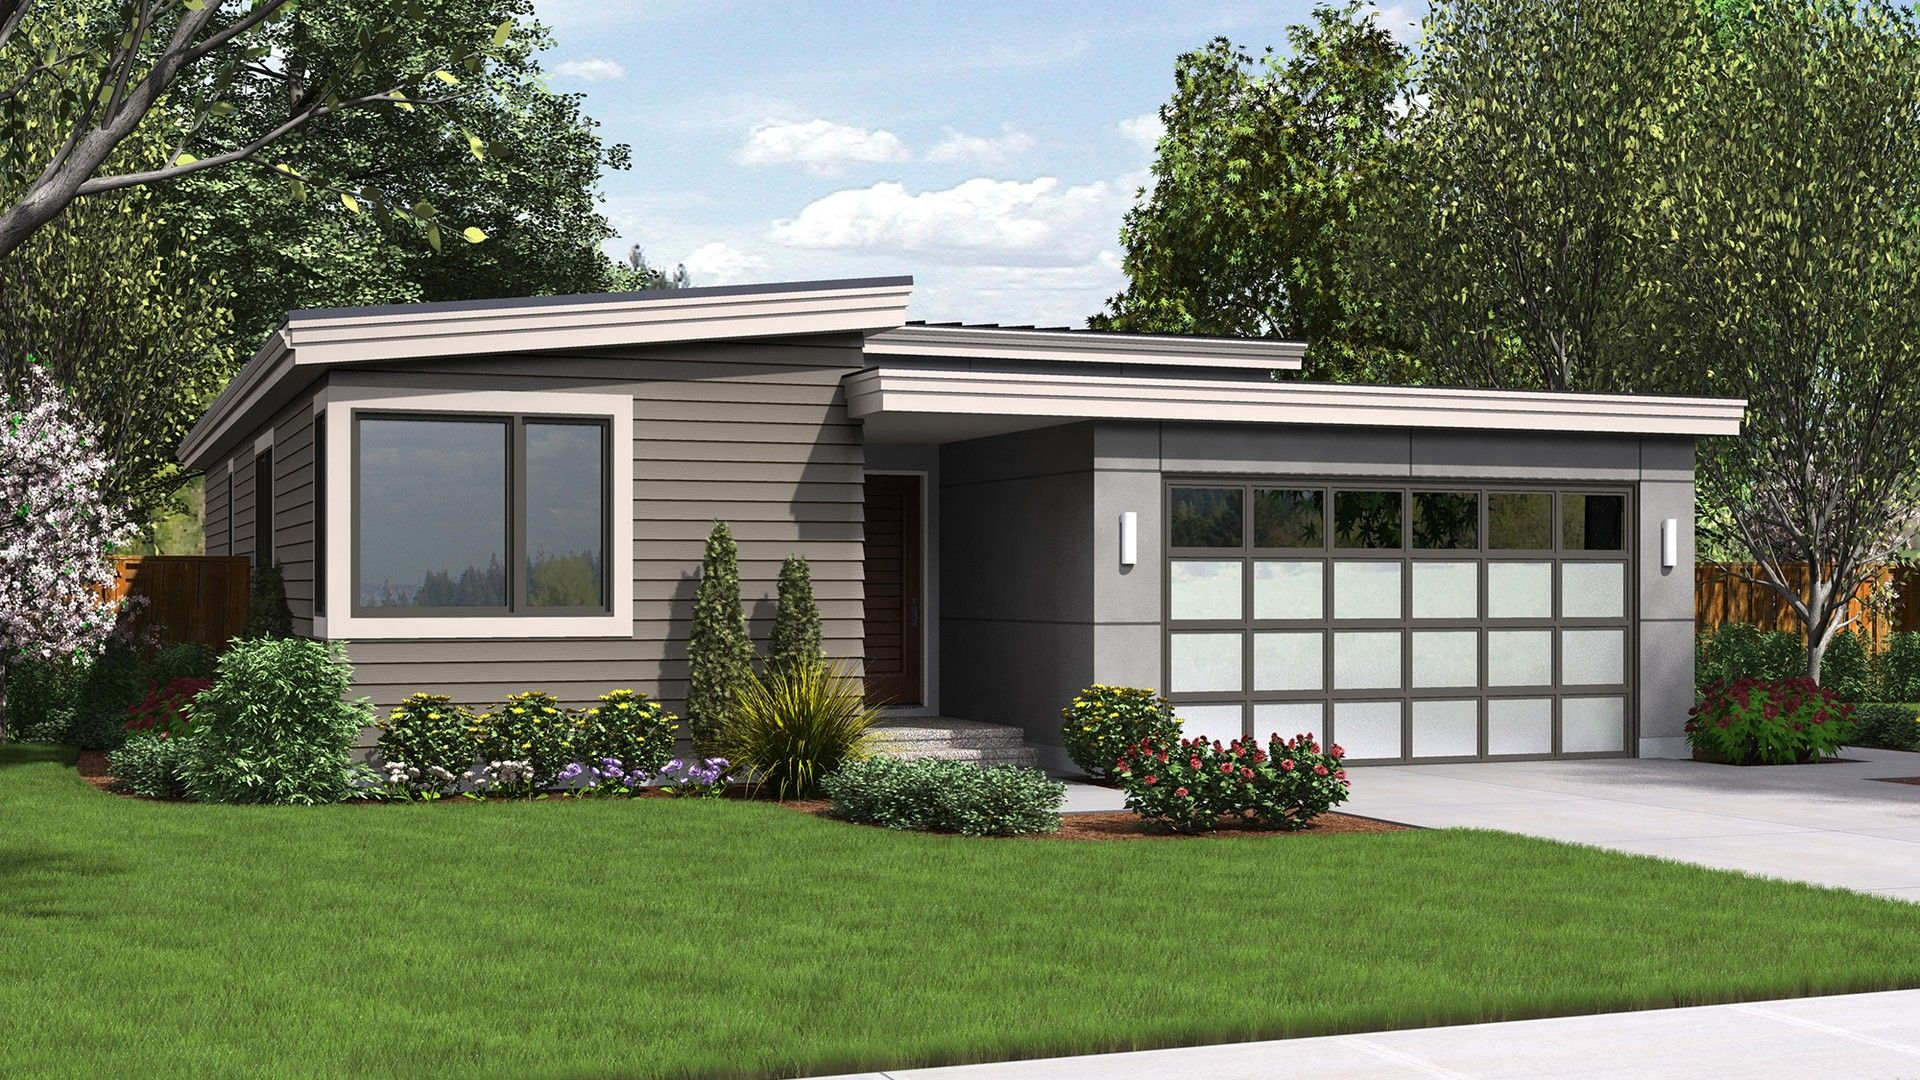 Alan Mascord Design Associates Plan 1164es Front Rendering Contemporary House Plans Narrow Lot House Plans Modern Style House Plans